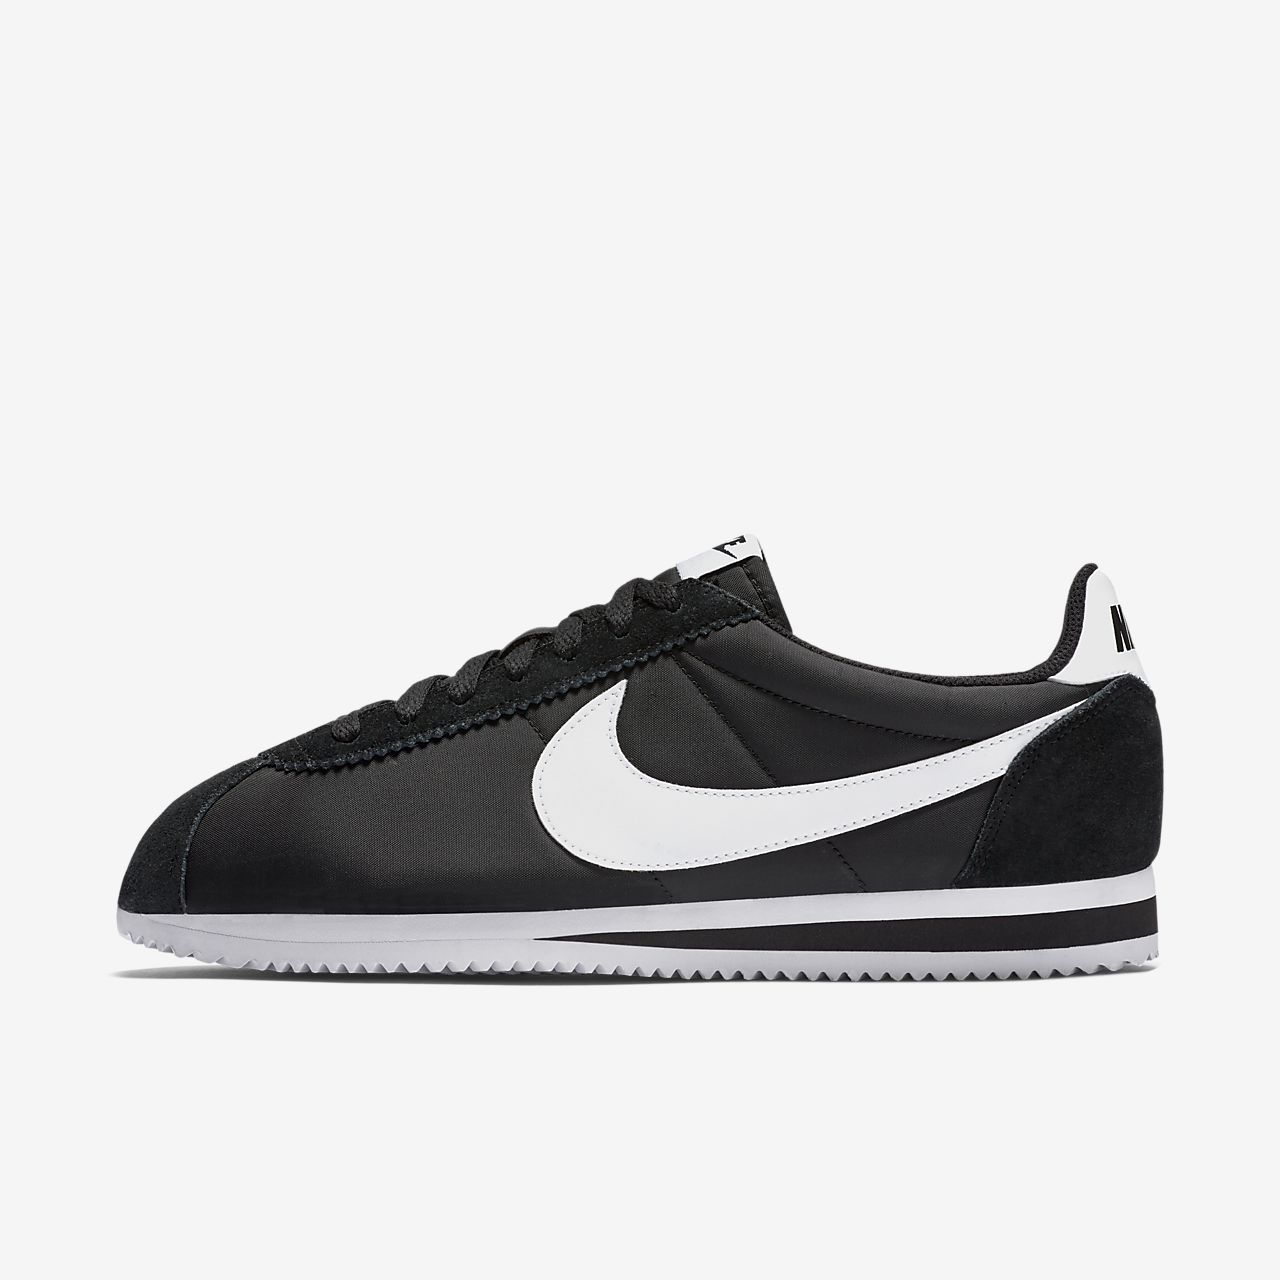 detailed pictures a25bf 55c04 ... Sko Nike Classic Cortez Nylon Unisex